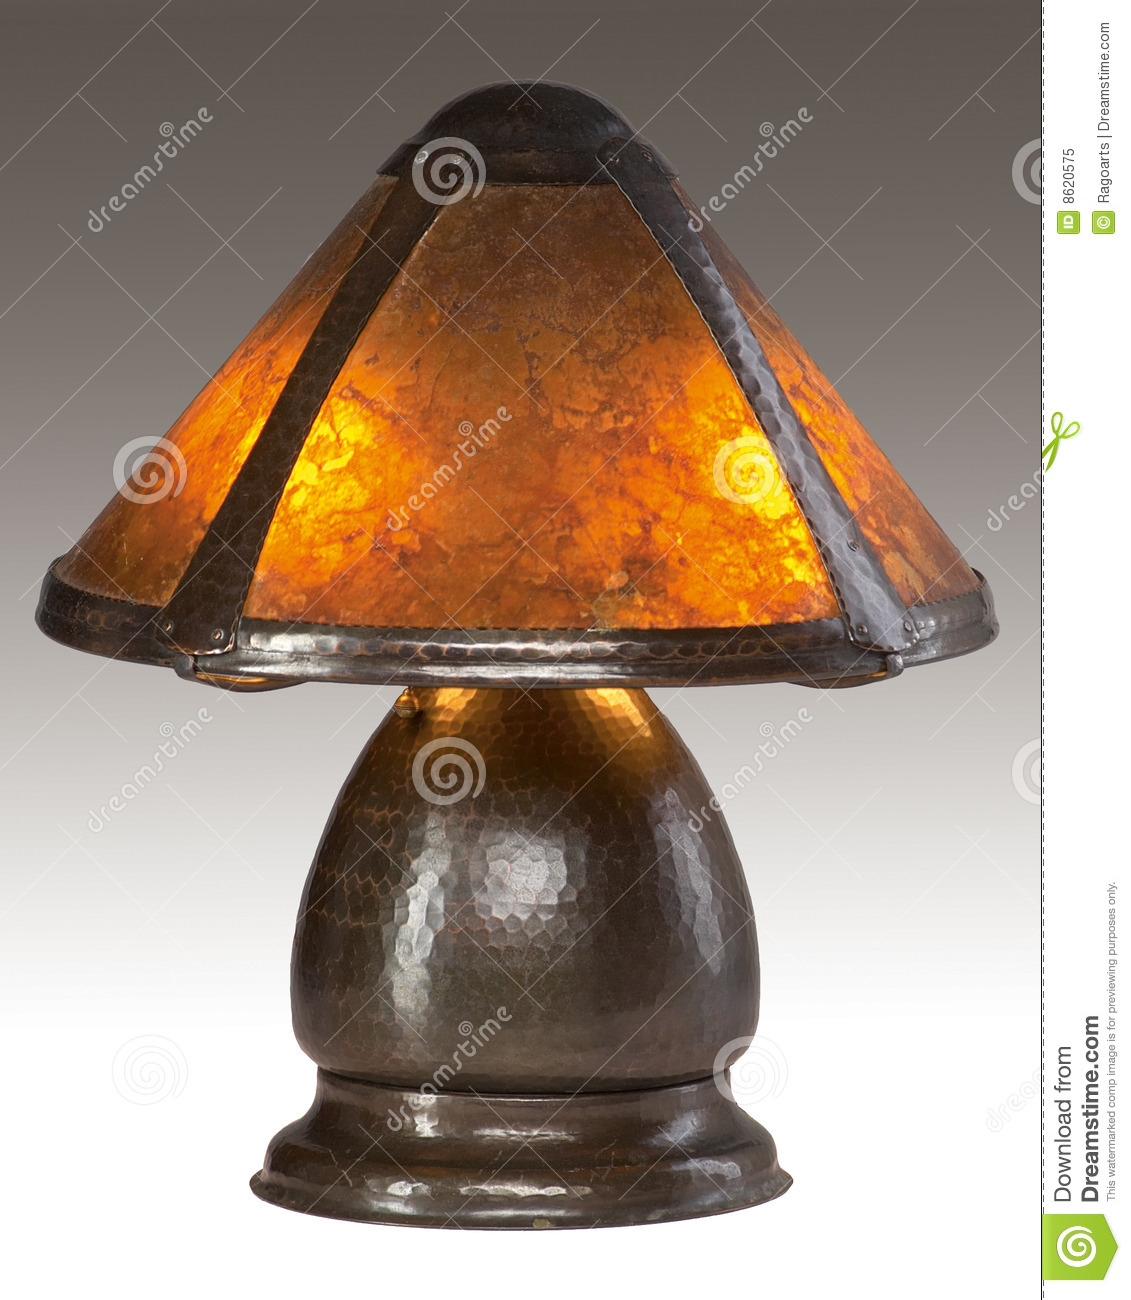 Arts and crafts mica shade table lamp editorial image image of download arts and crafts mica shade table lamp editorial image image of antique pattern aloadofball Gallery